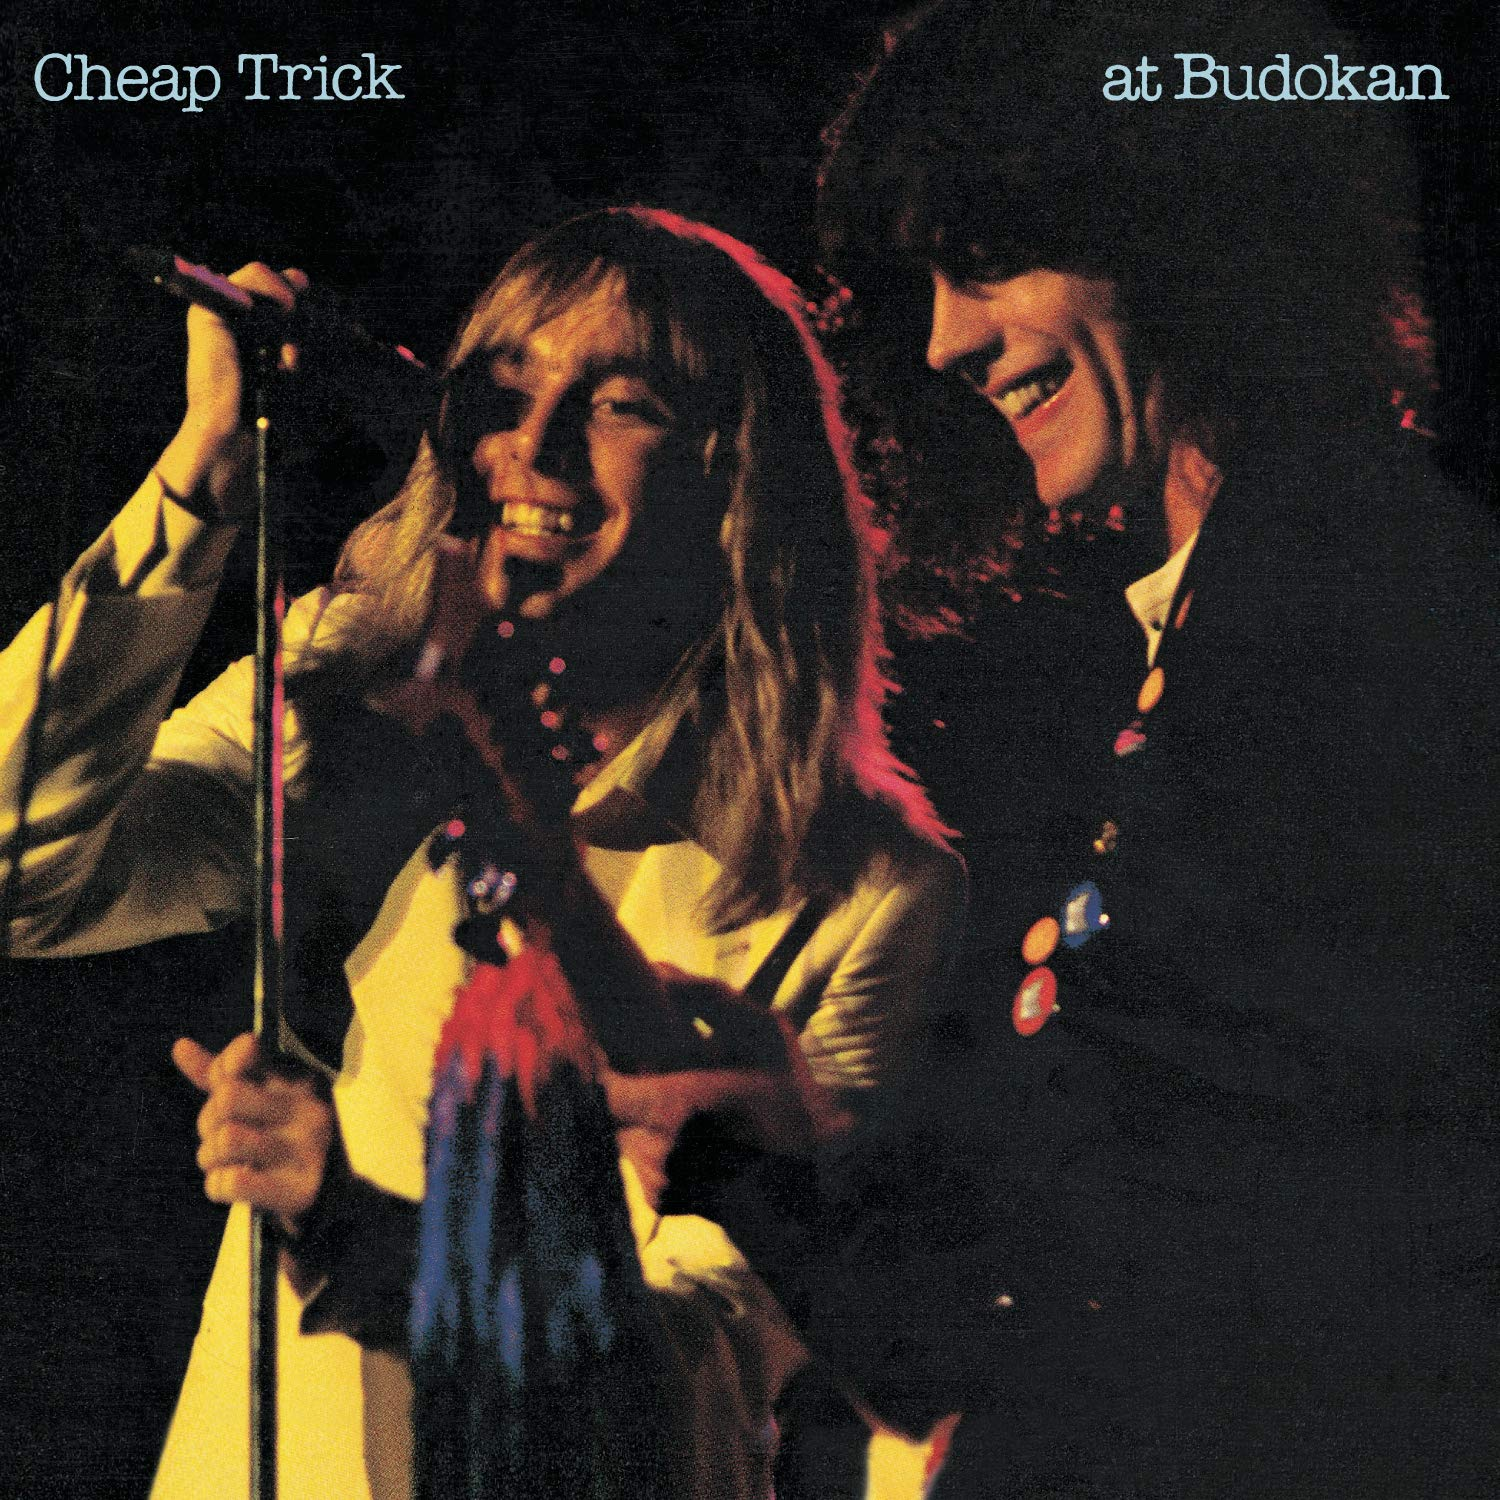 The Sounds of America: Cheap Trick at Budokan